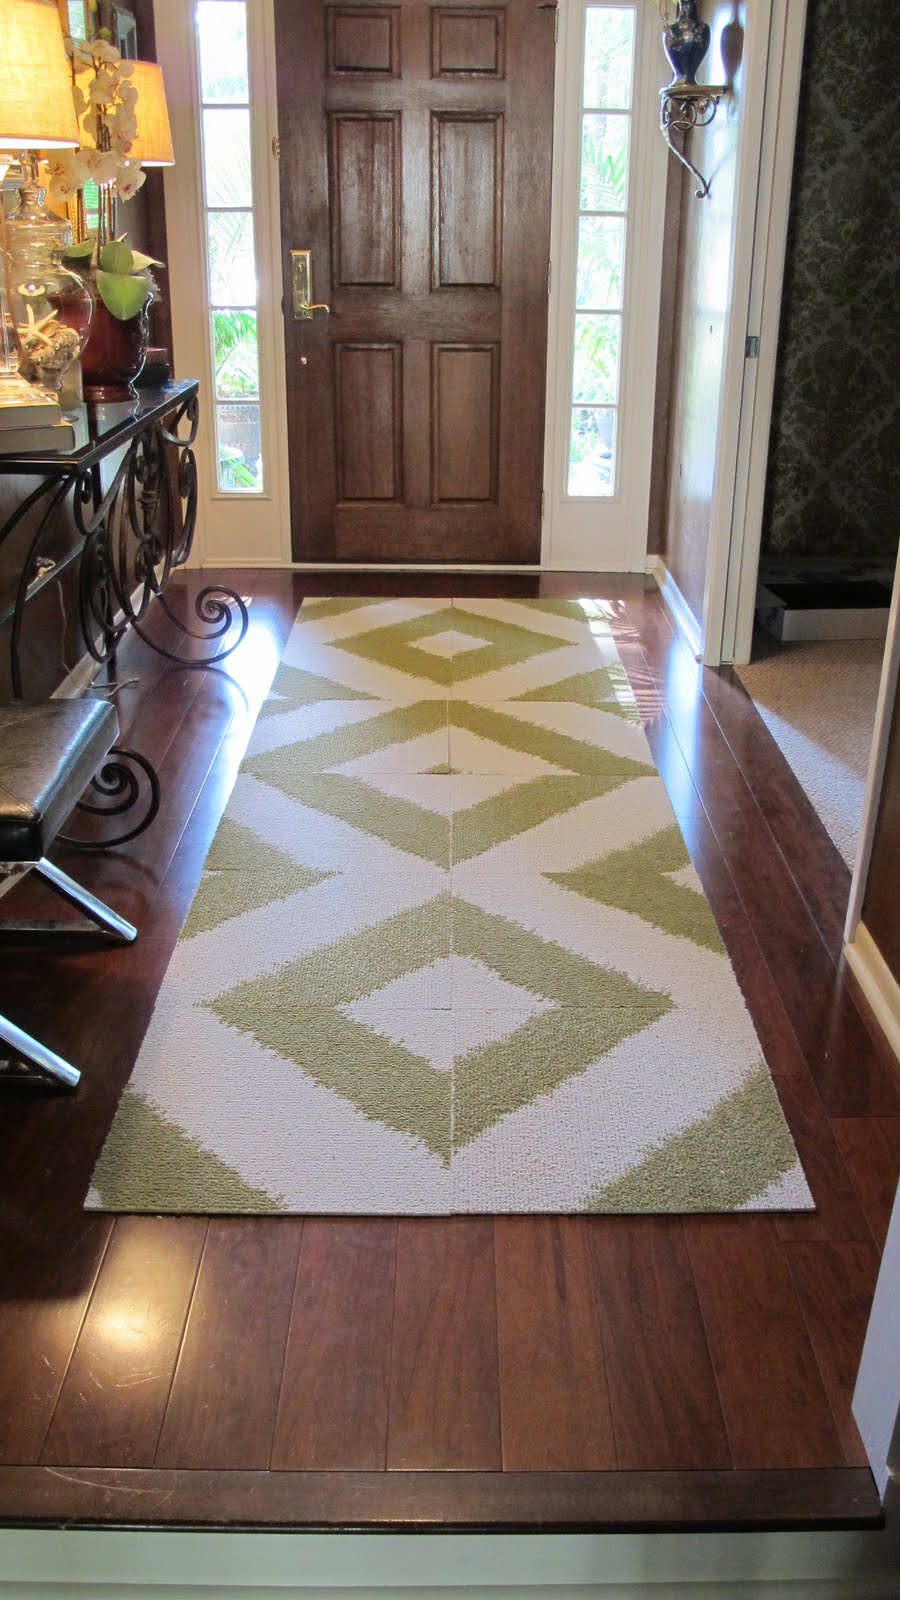 5 simple flooring fixes for homeowners and renters furnishmyway blog flooring fixes green and white geometric patterned carpet in entryway with wood floors dailygadgetfo Gallery